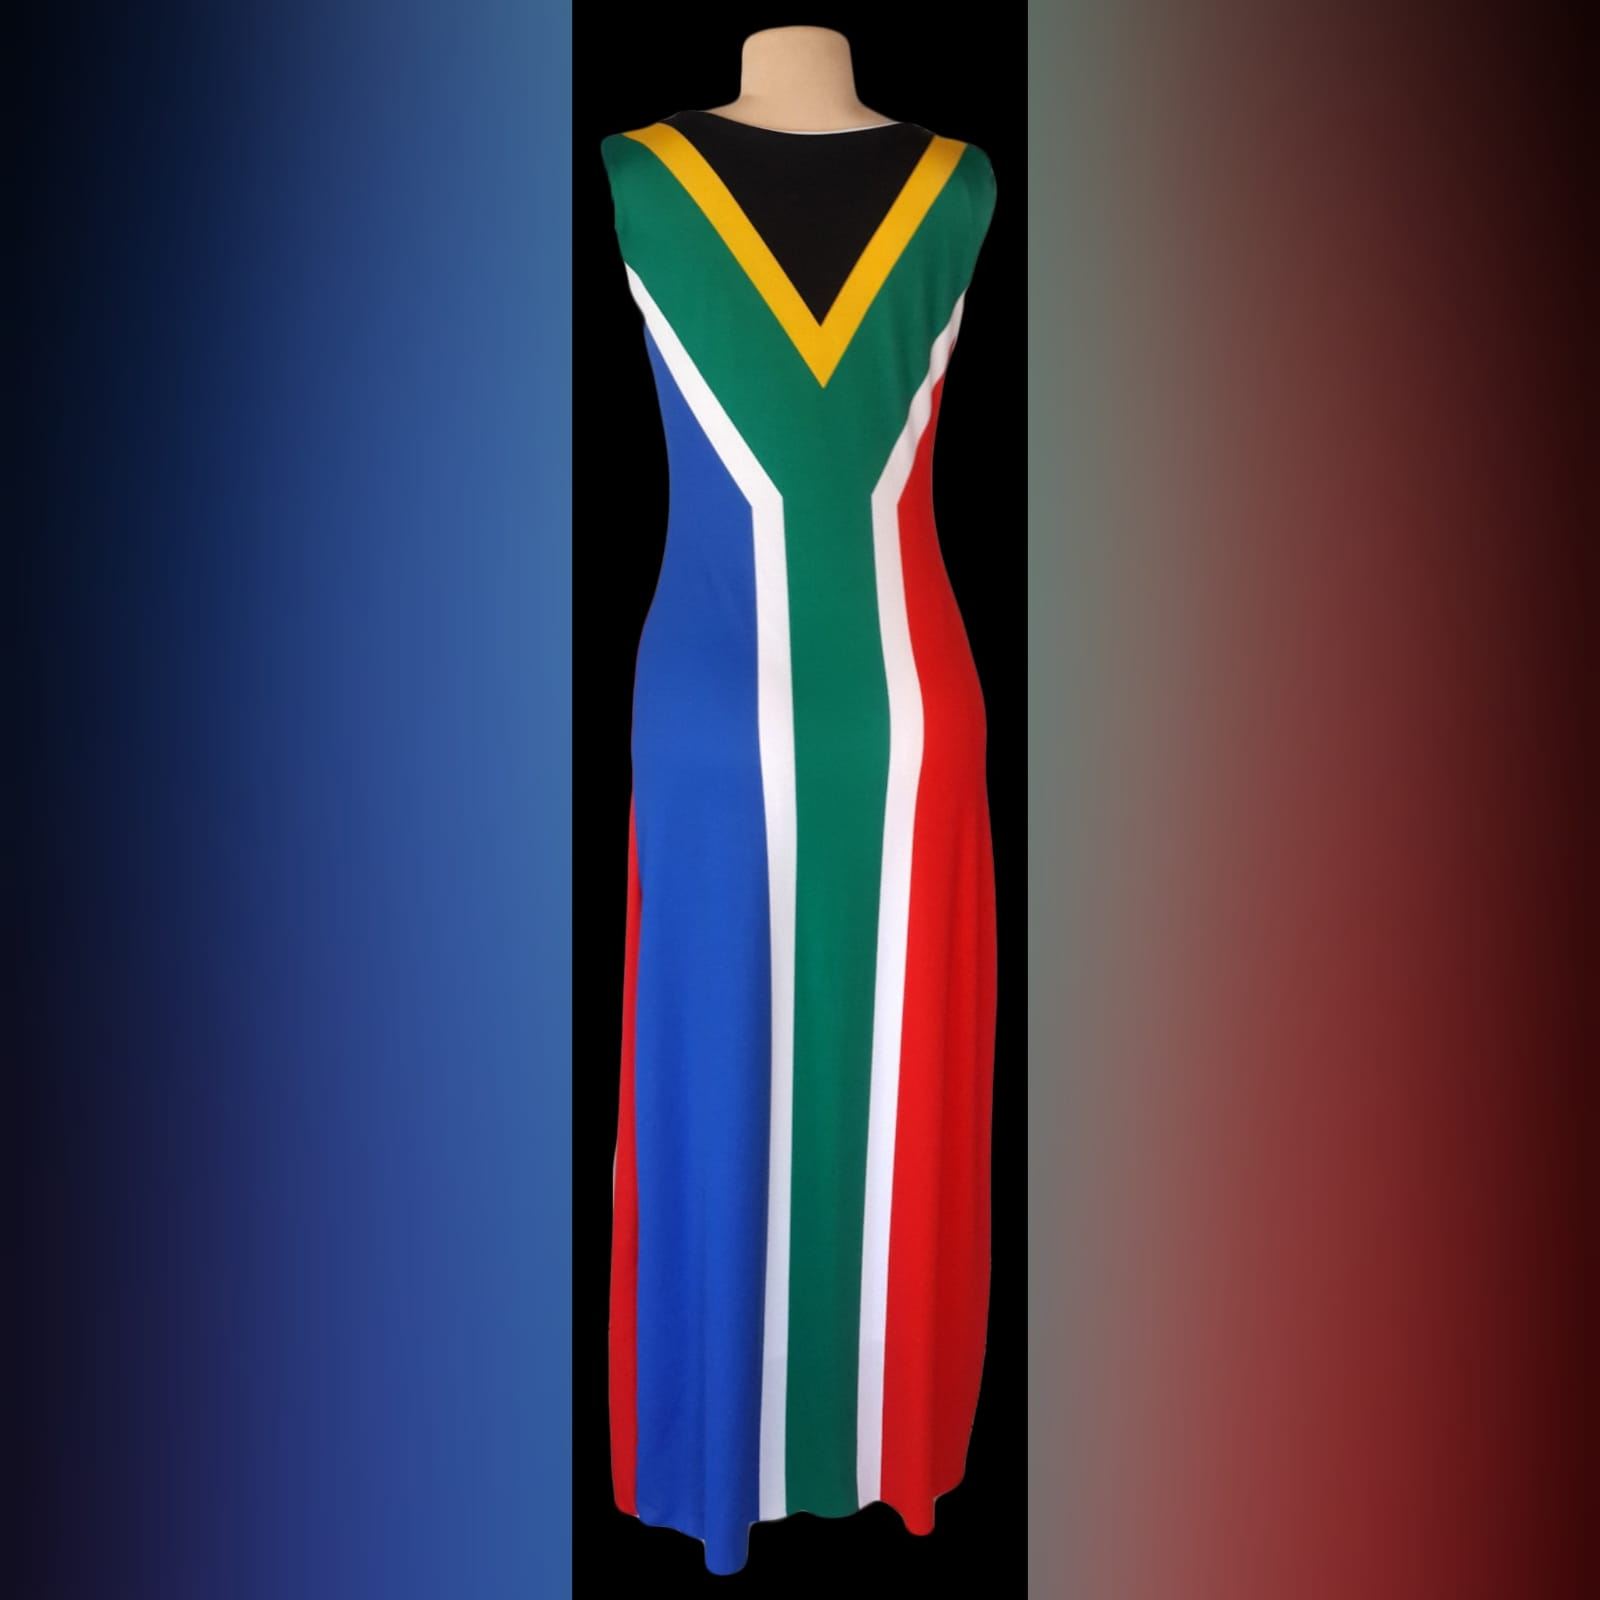 Long custom printed south african flag dress 3 long custom printed south african flag dress (flag in front and the back) with matching bow ties that you can request at an extra cost when you order your dress.